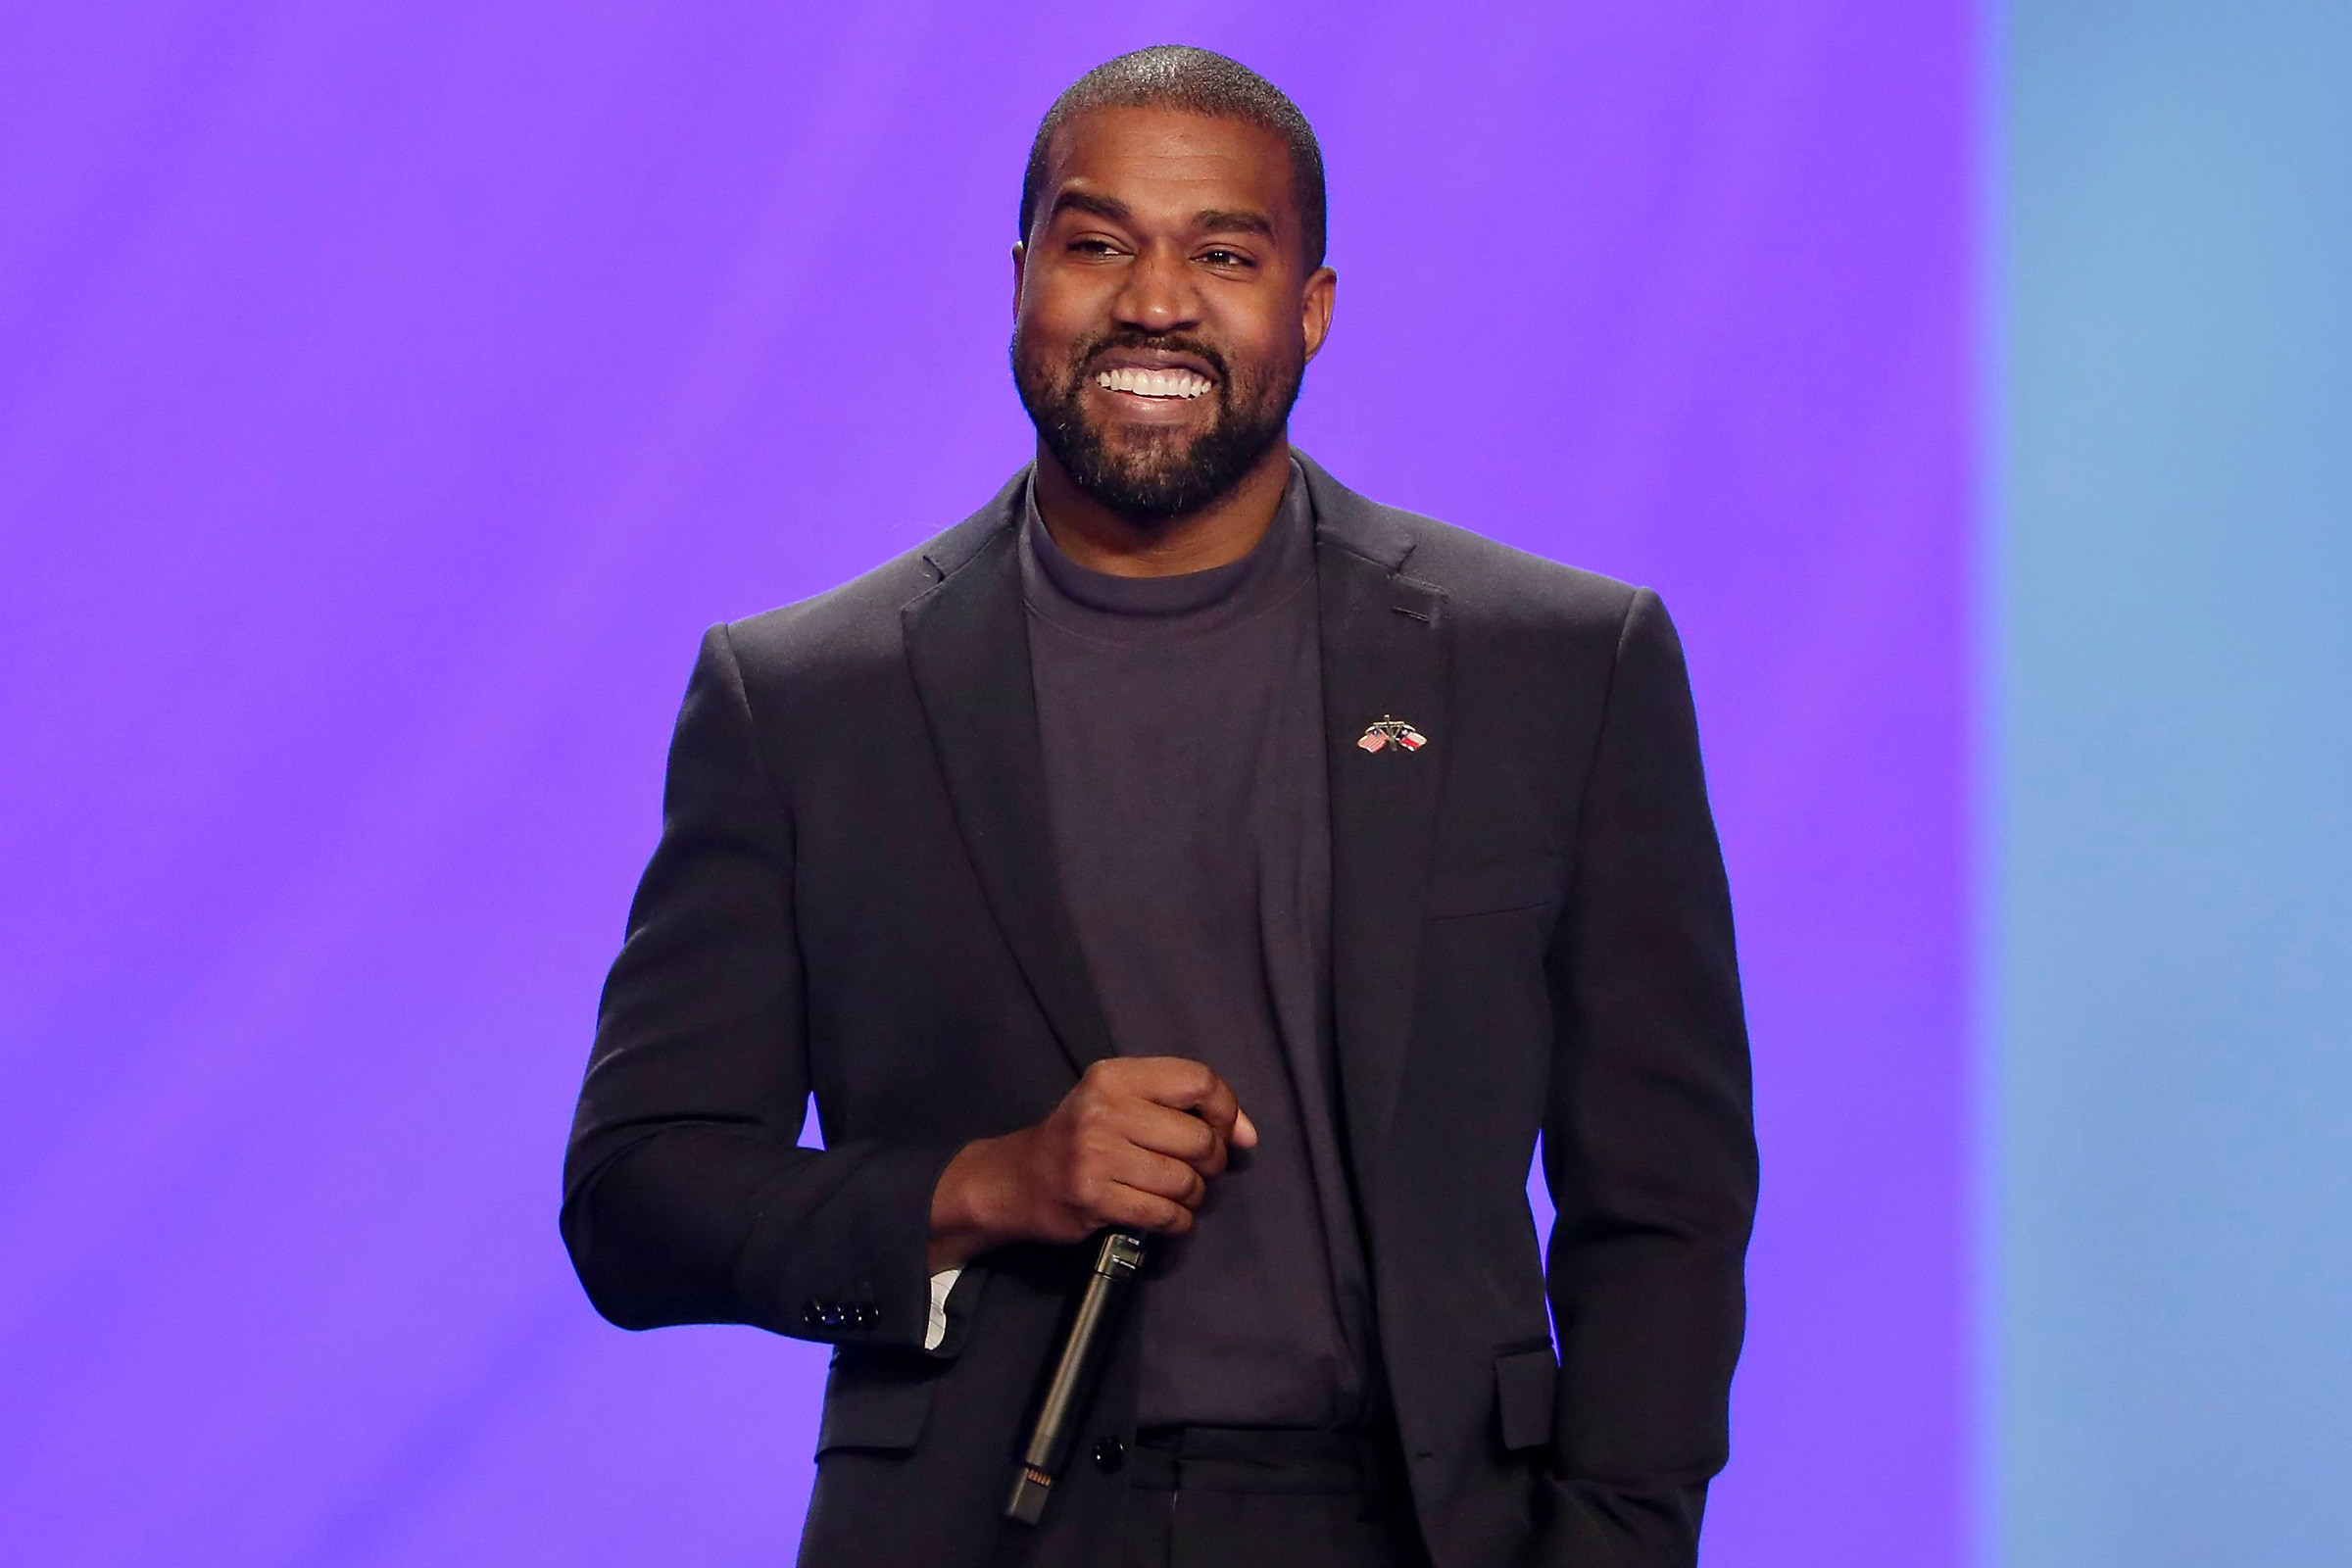 Kanye West tops the list